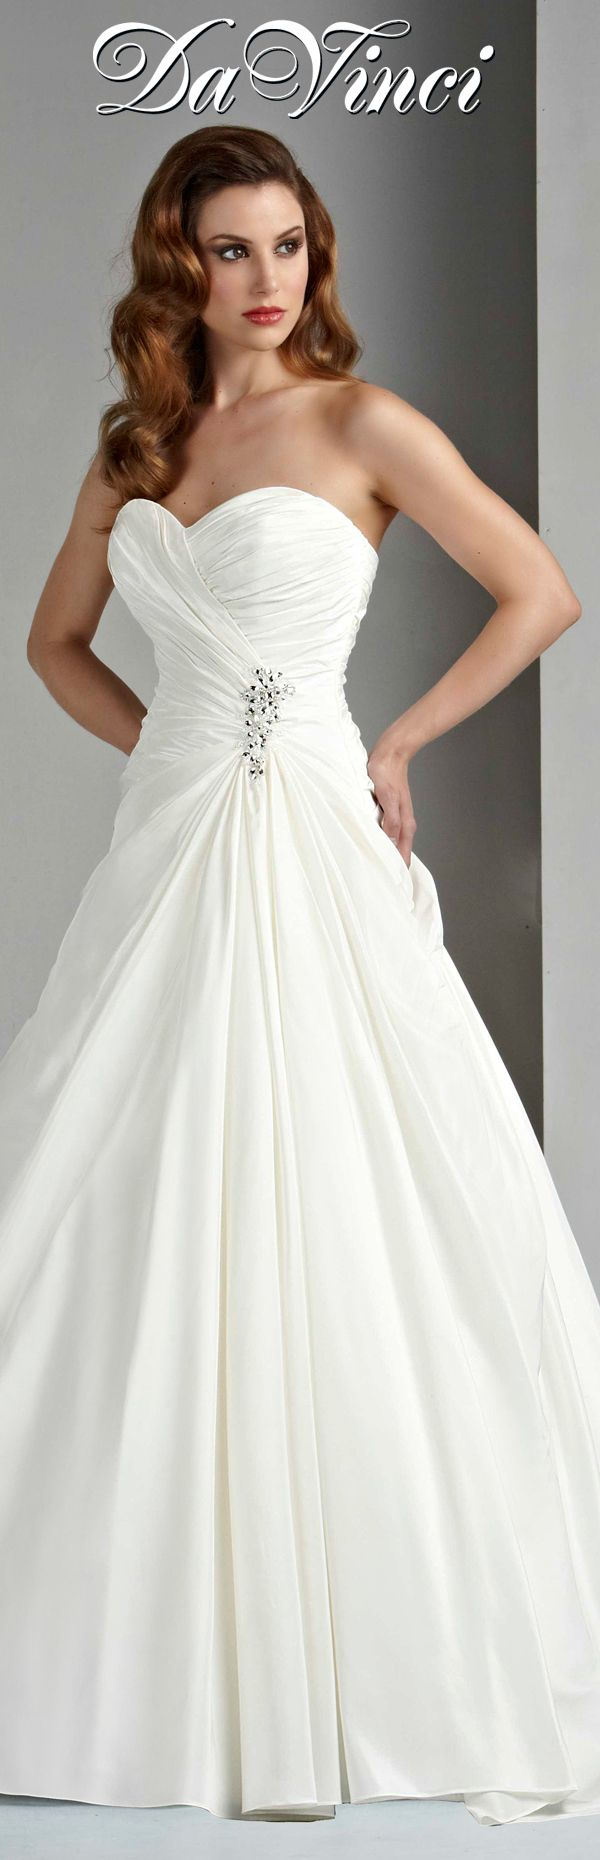 DaVinci Bridal Style # 50028 Taffeta A-line gown with a sweetheart strapless neckline, pleating draped from neckline and throughout the skirt, and the waist is adorned with a beaded embellishment.  Lace-up back. http://www.davincibridal.com/